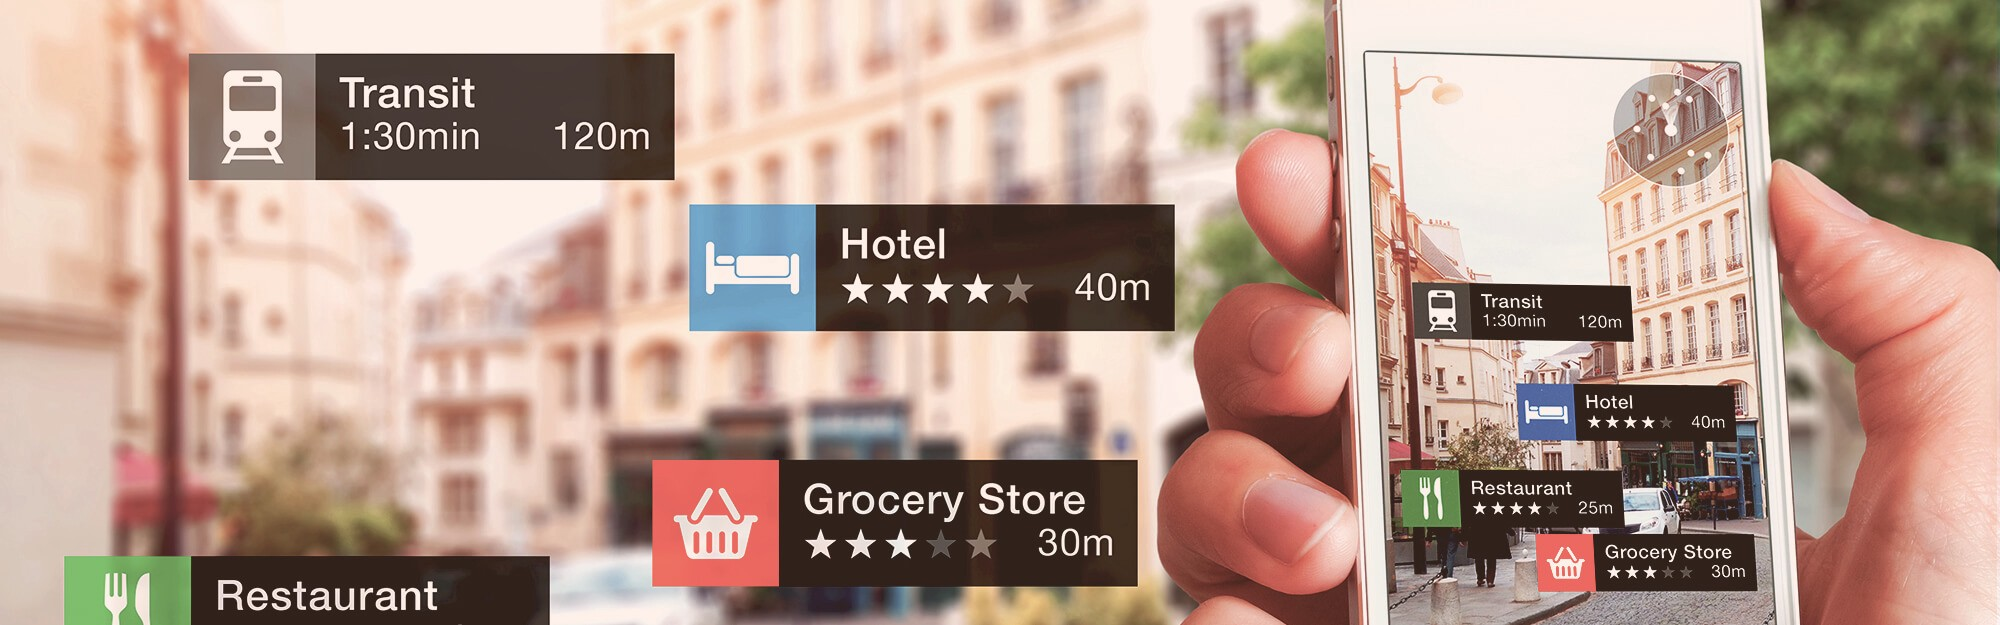 Augmented reality and brand experience: examples and